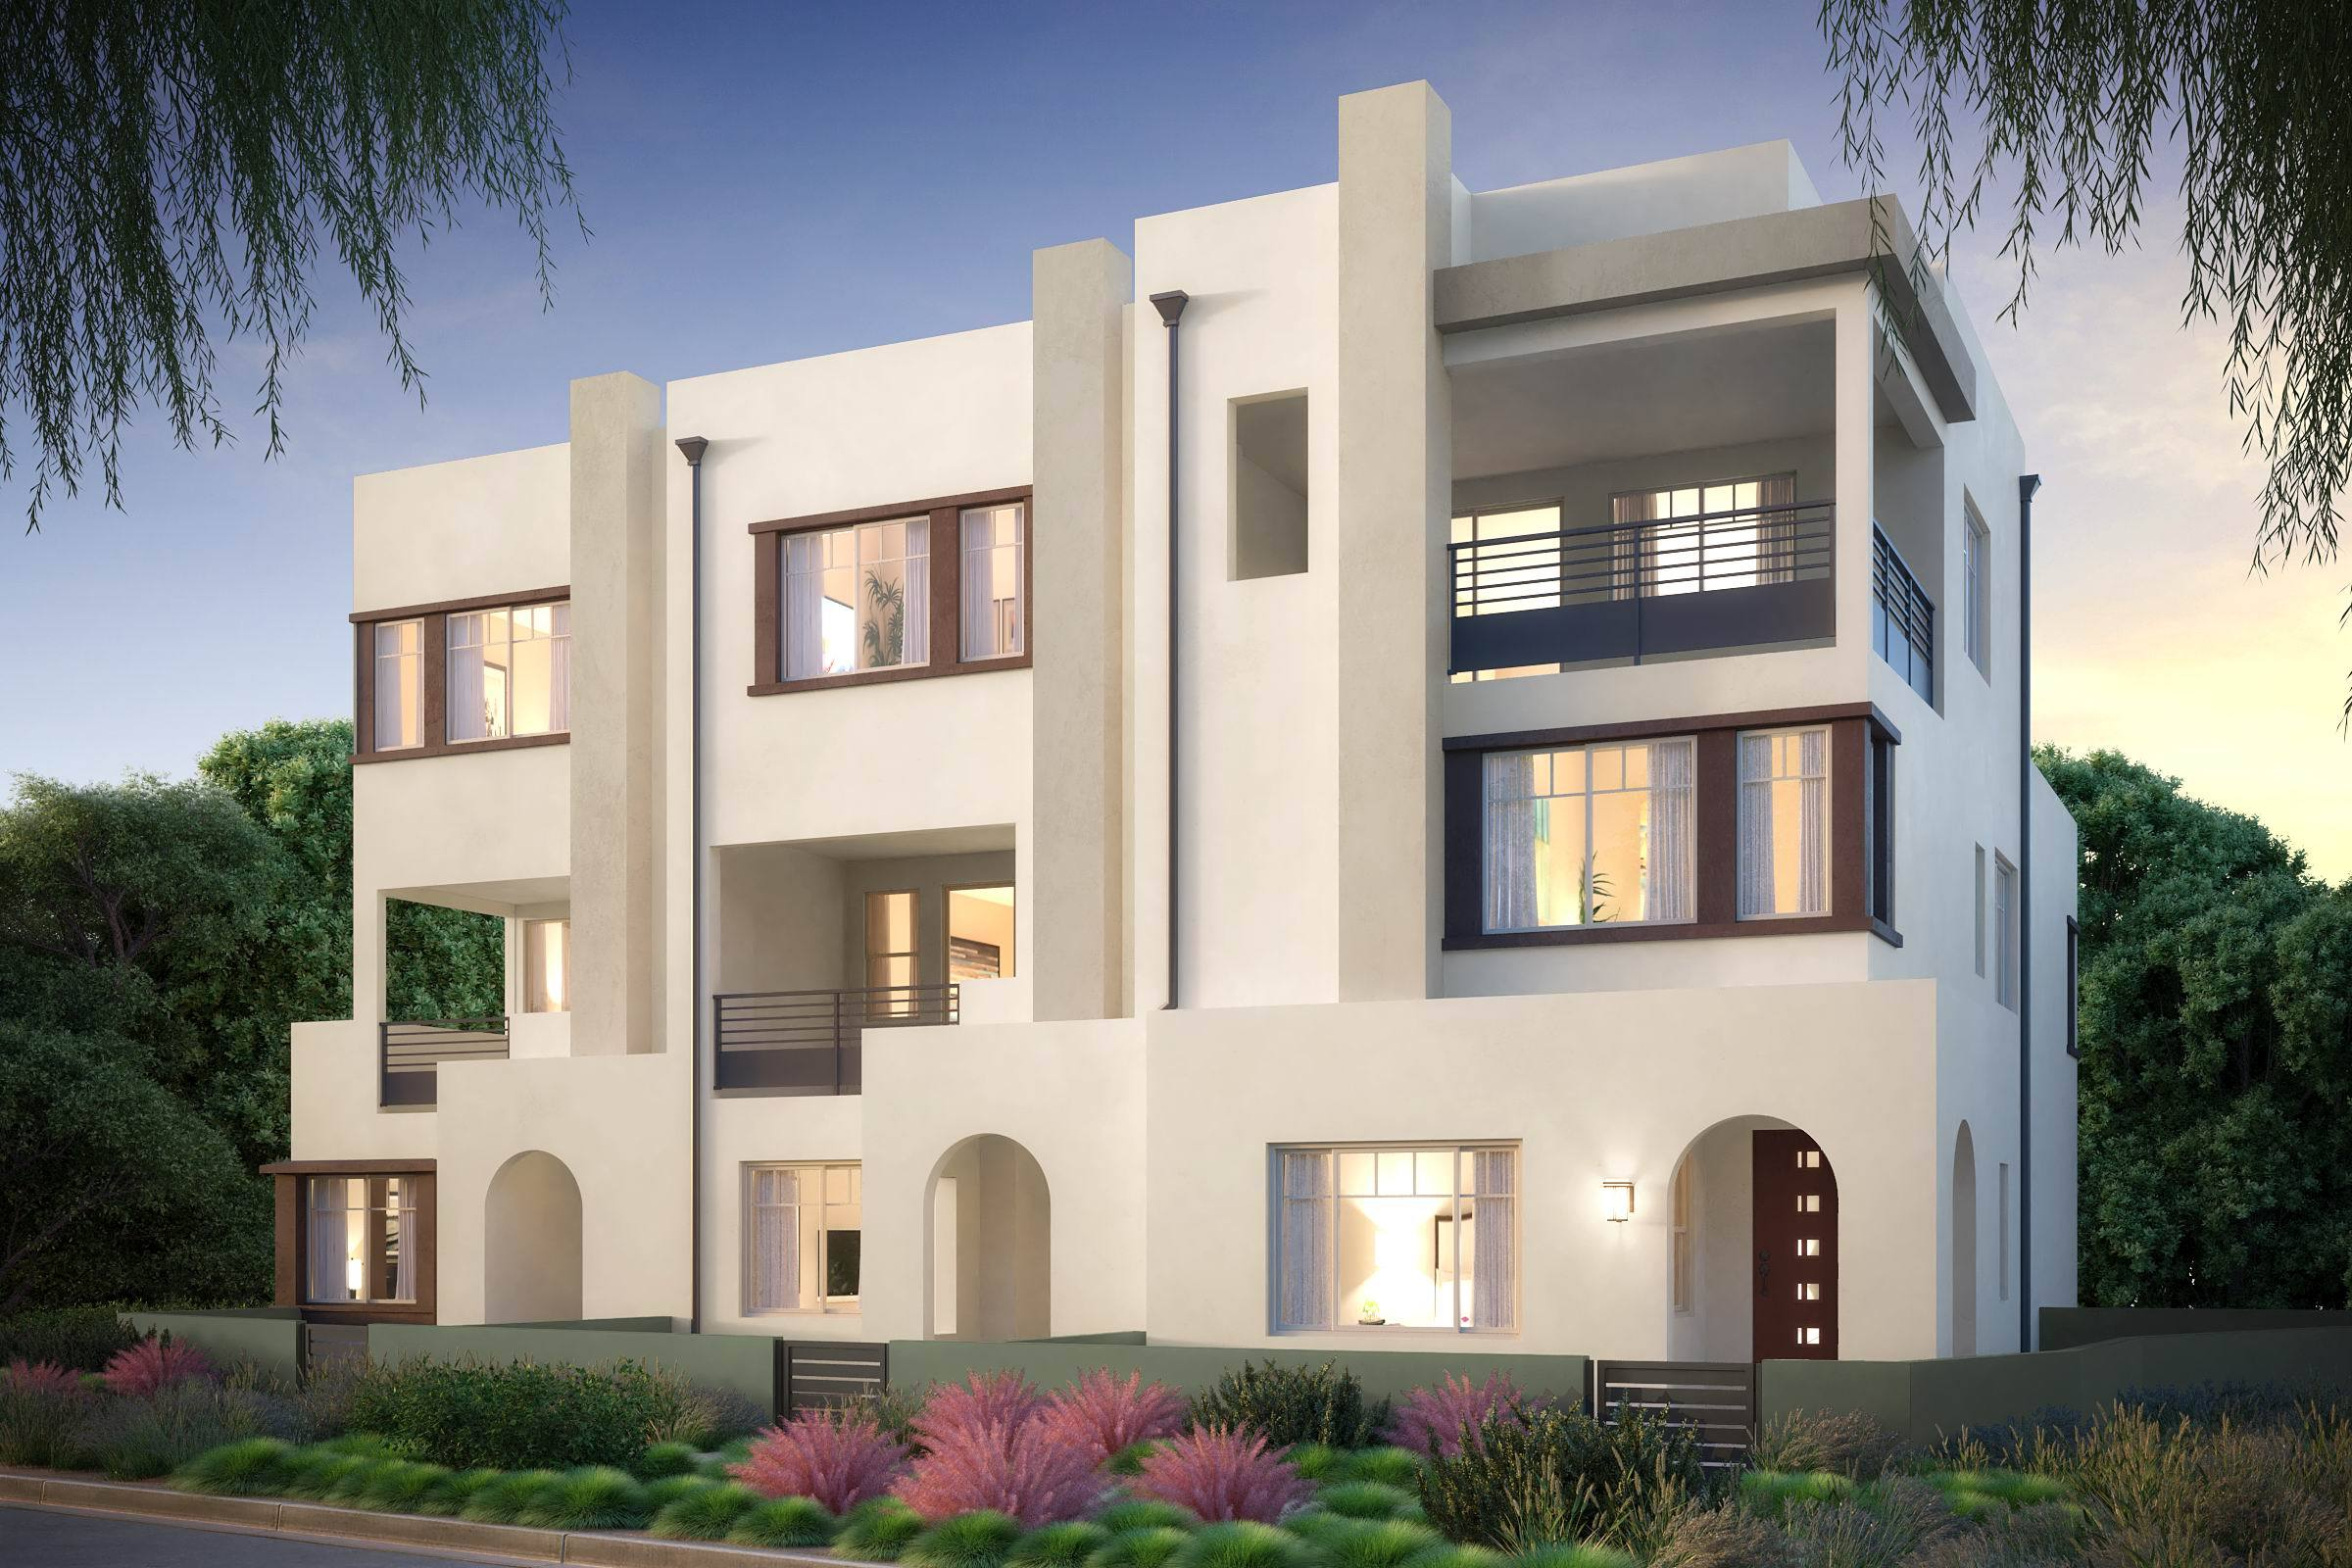 Multi Family for Sale at Muse At Cadence Park - Muse Plan 3 133 Frame Irvine, California 92618 United States